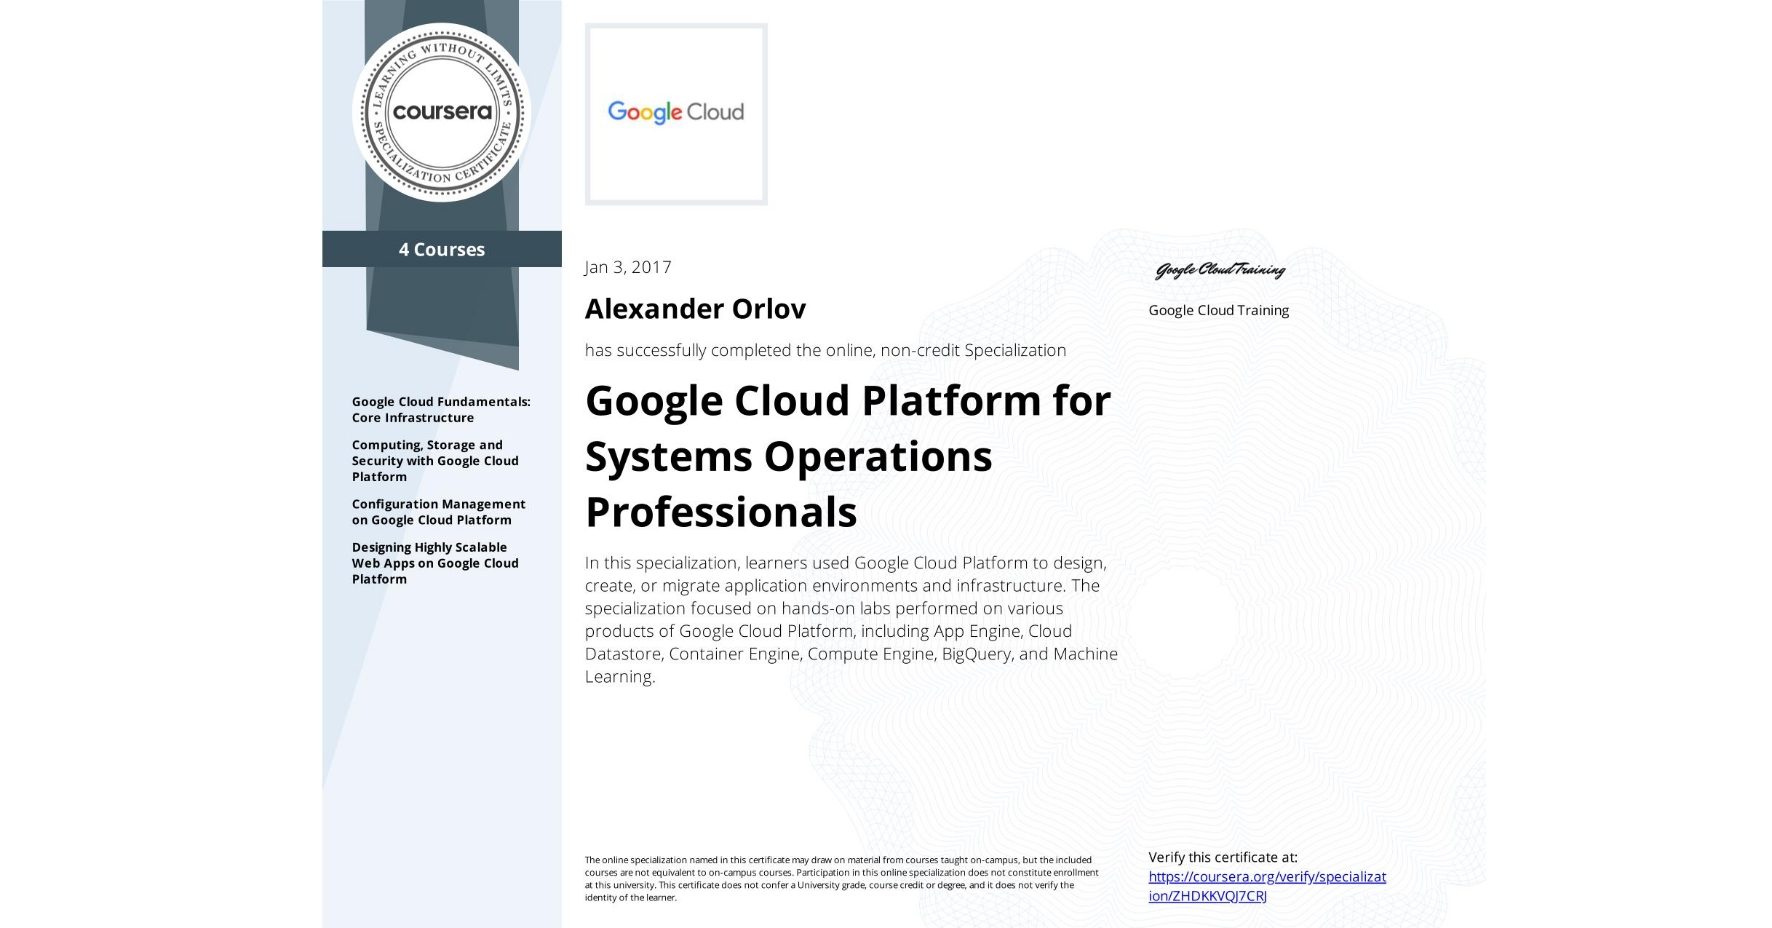 View certificate for Alexander Orlov, Google Cloud Platform for Systems Operations Professionals, offered through Coursera. In this specialization, learners used Google Cloud Platform to design, create, or migrate application environments and infrastructure. The specialization focused on hands-on labs performed on various products of Google Cloud Platform, including App Engine, Cloud Datastore, Container Engine, Compute Engine, BigQuery, and Machine Learning.